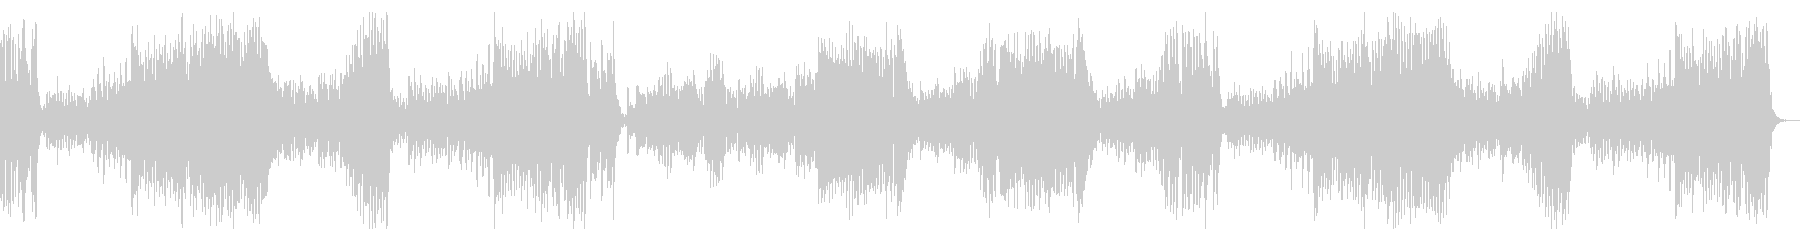 Athletic meet classic Radetzky March's unreproduced waveform